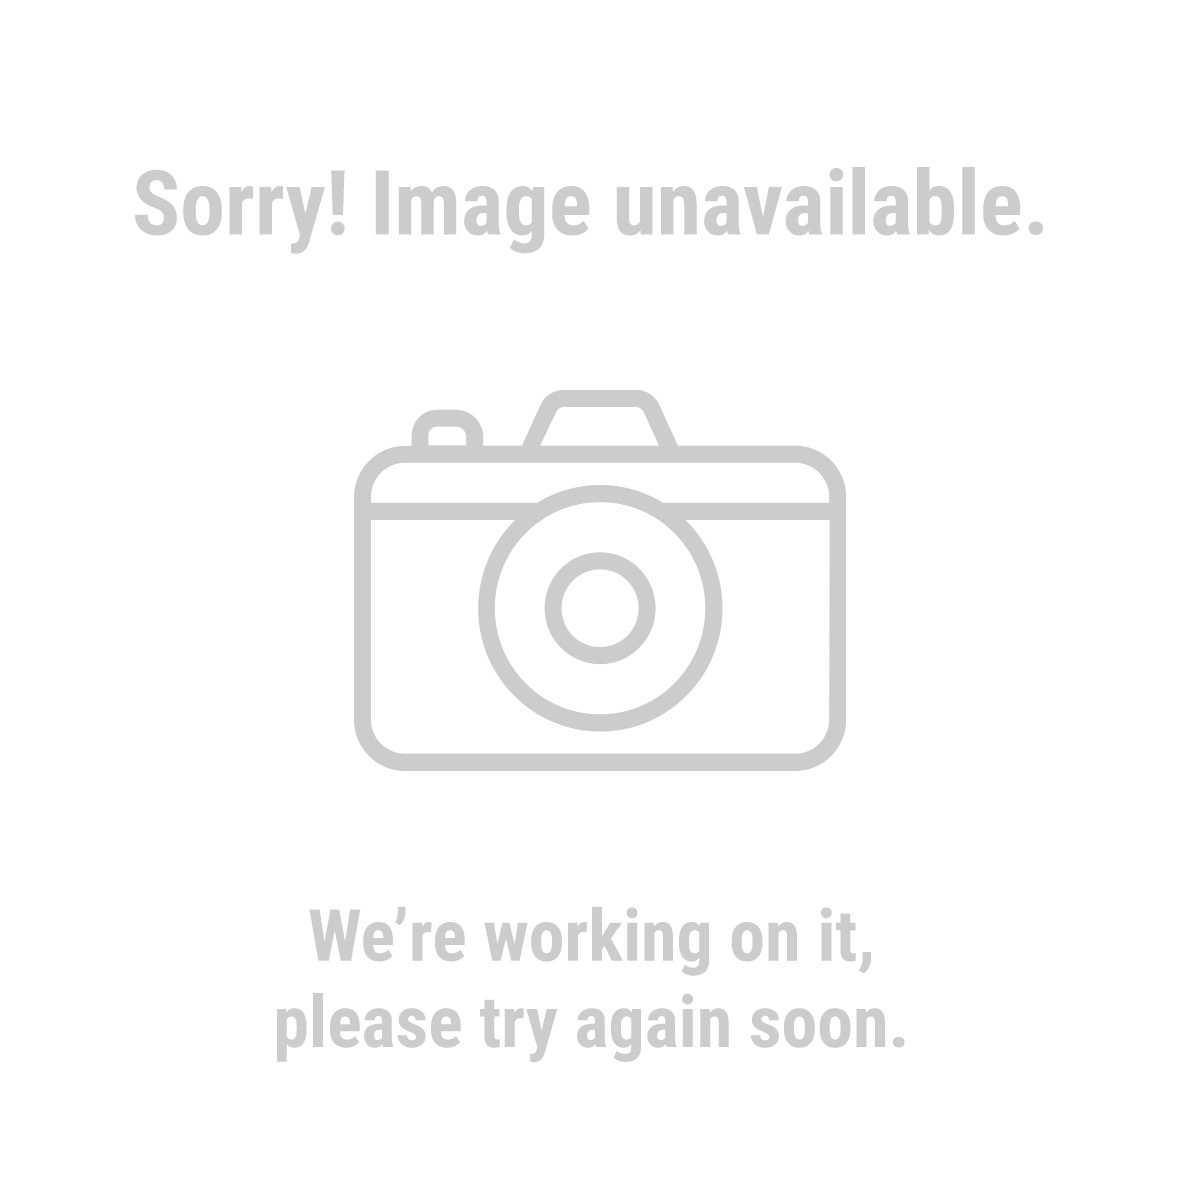 95587 Tire Rim Gear Clock